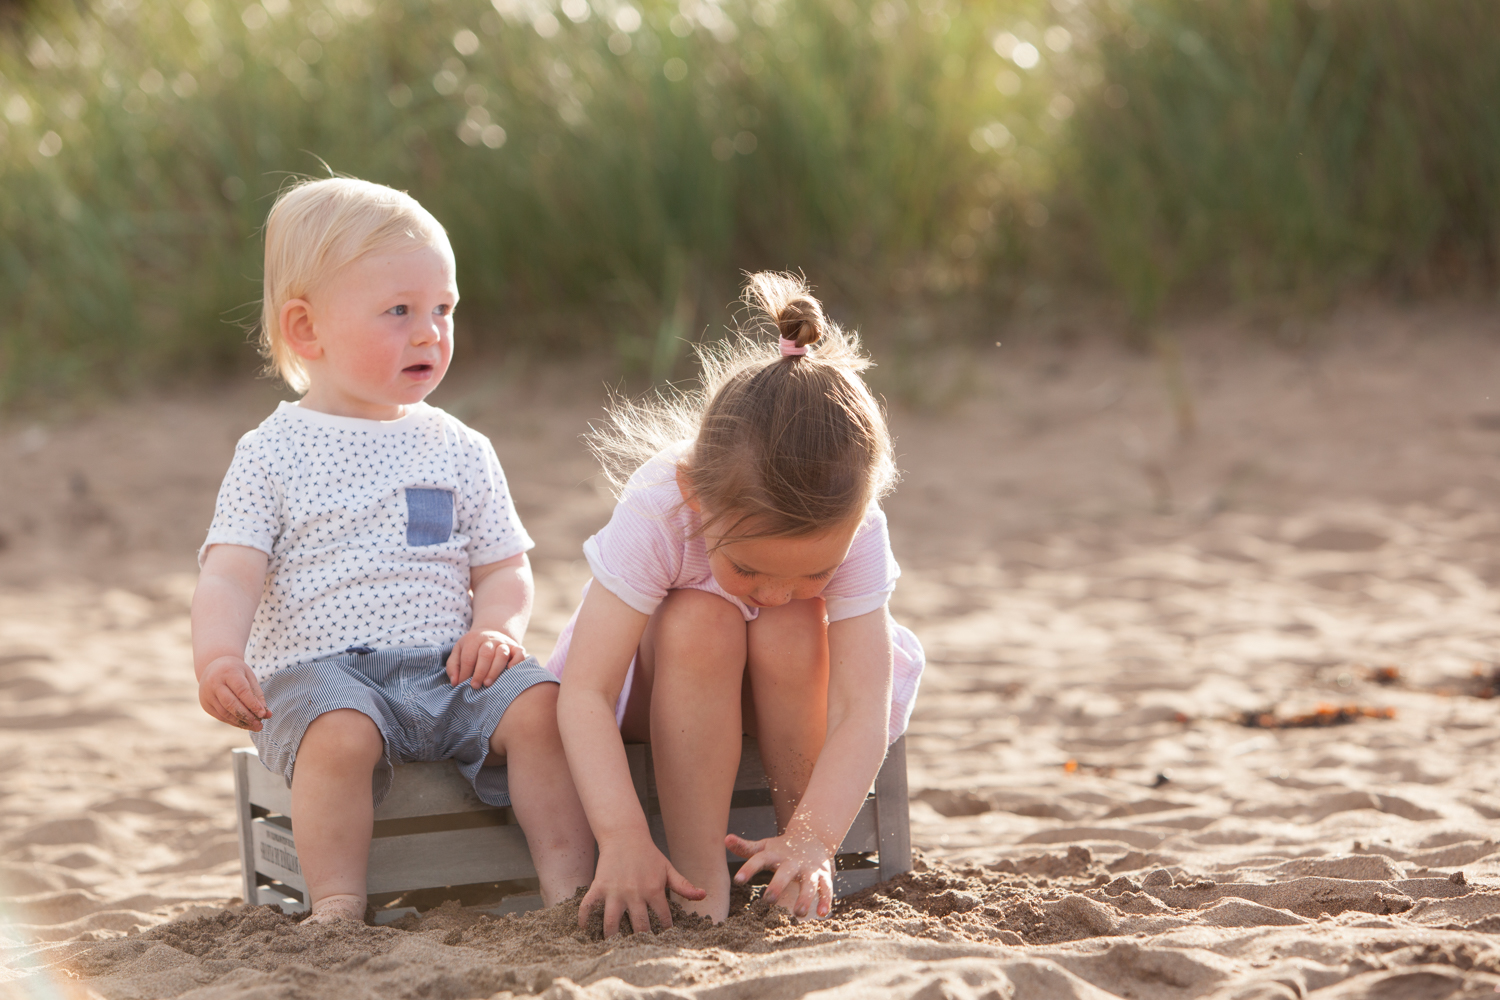 PICTORIAL_BERWICK_child-location-family-session-photoshoot-outdoor-beach-coldingham-sands-heather-haze-4247.jpg